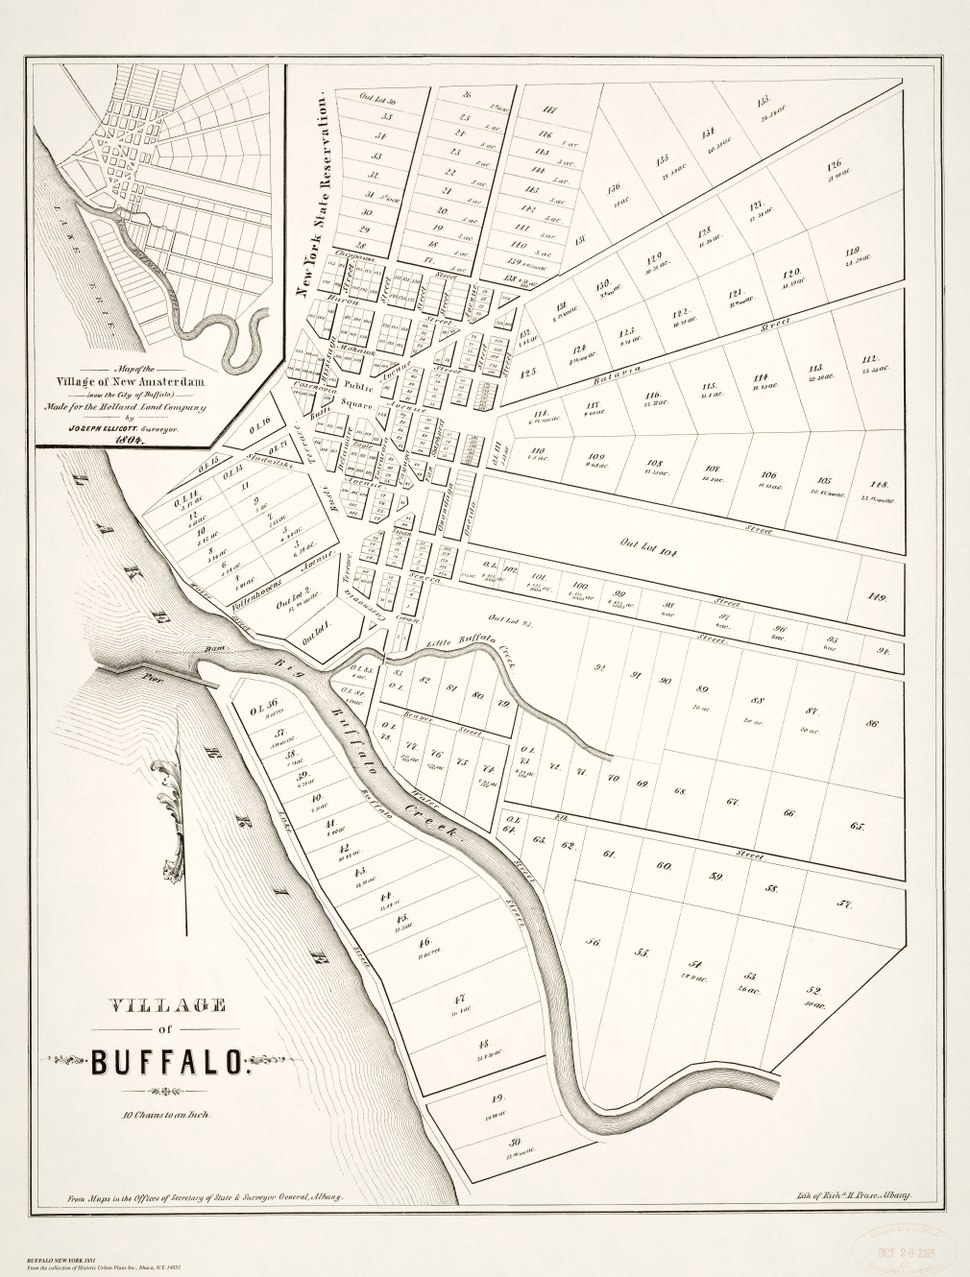 Village of Buffalo